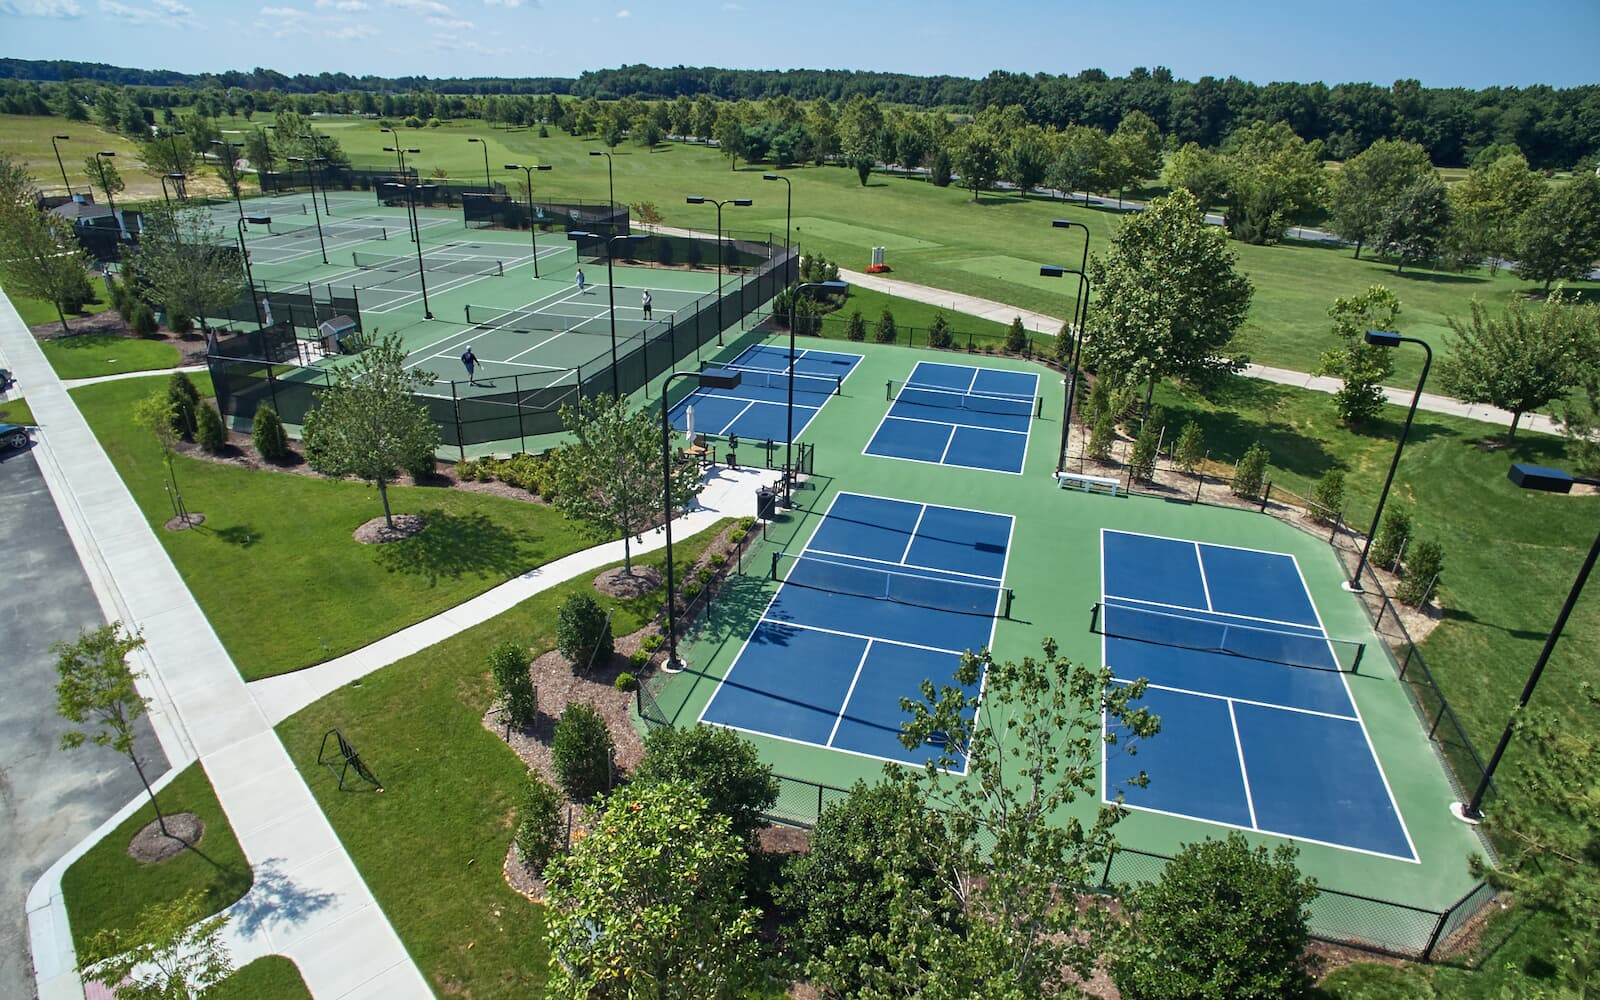 Tennis and Pickleball Courts at Heritage Shores in Bridgeville, DE.